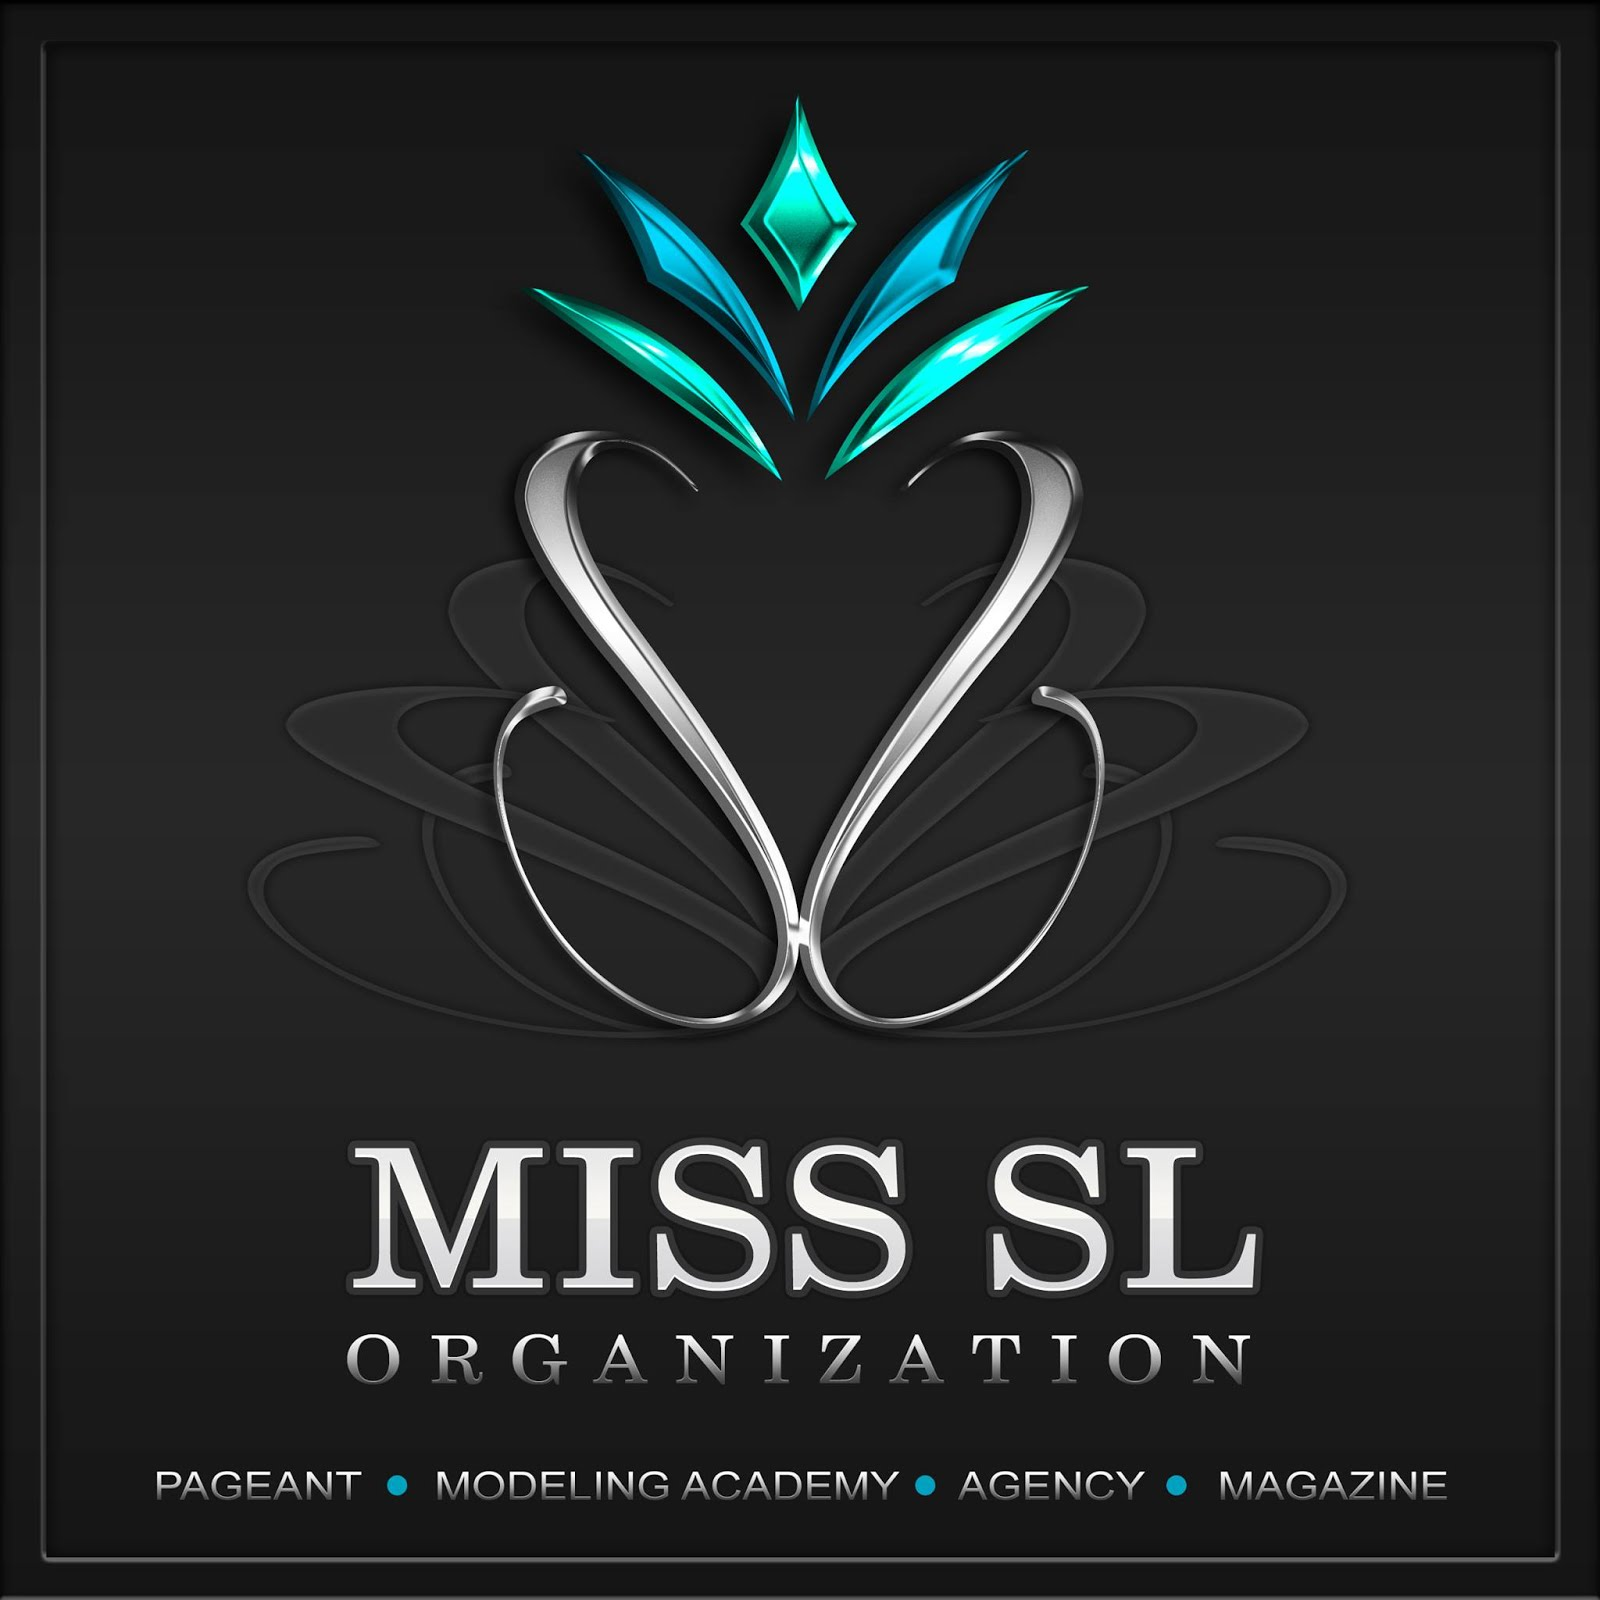 MISS SL Organization